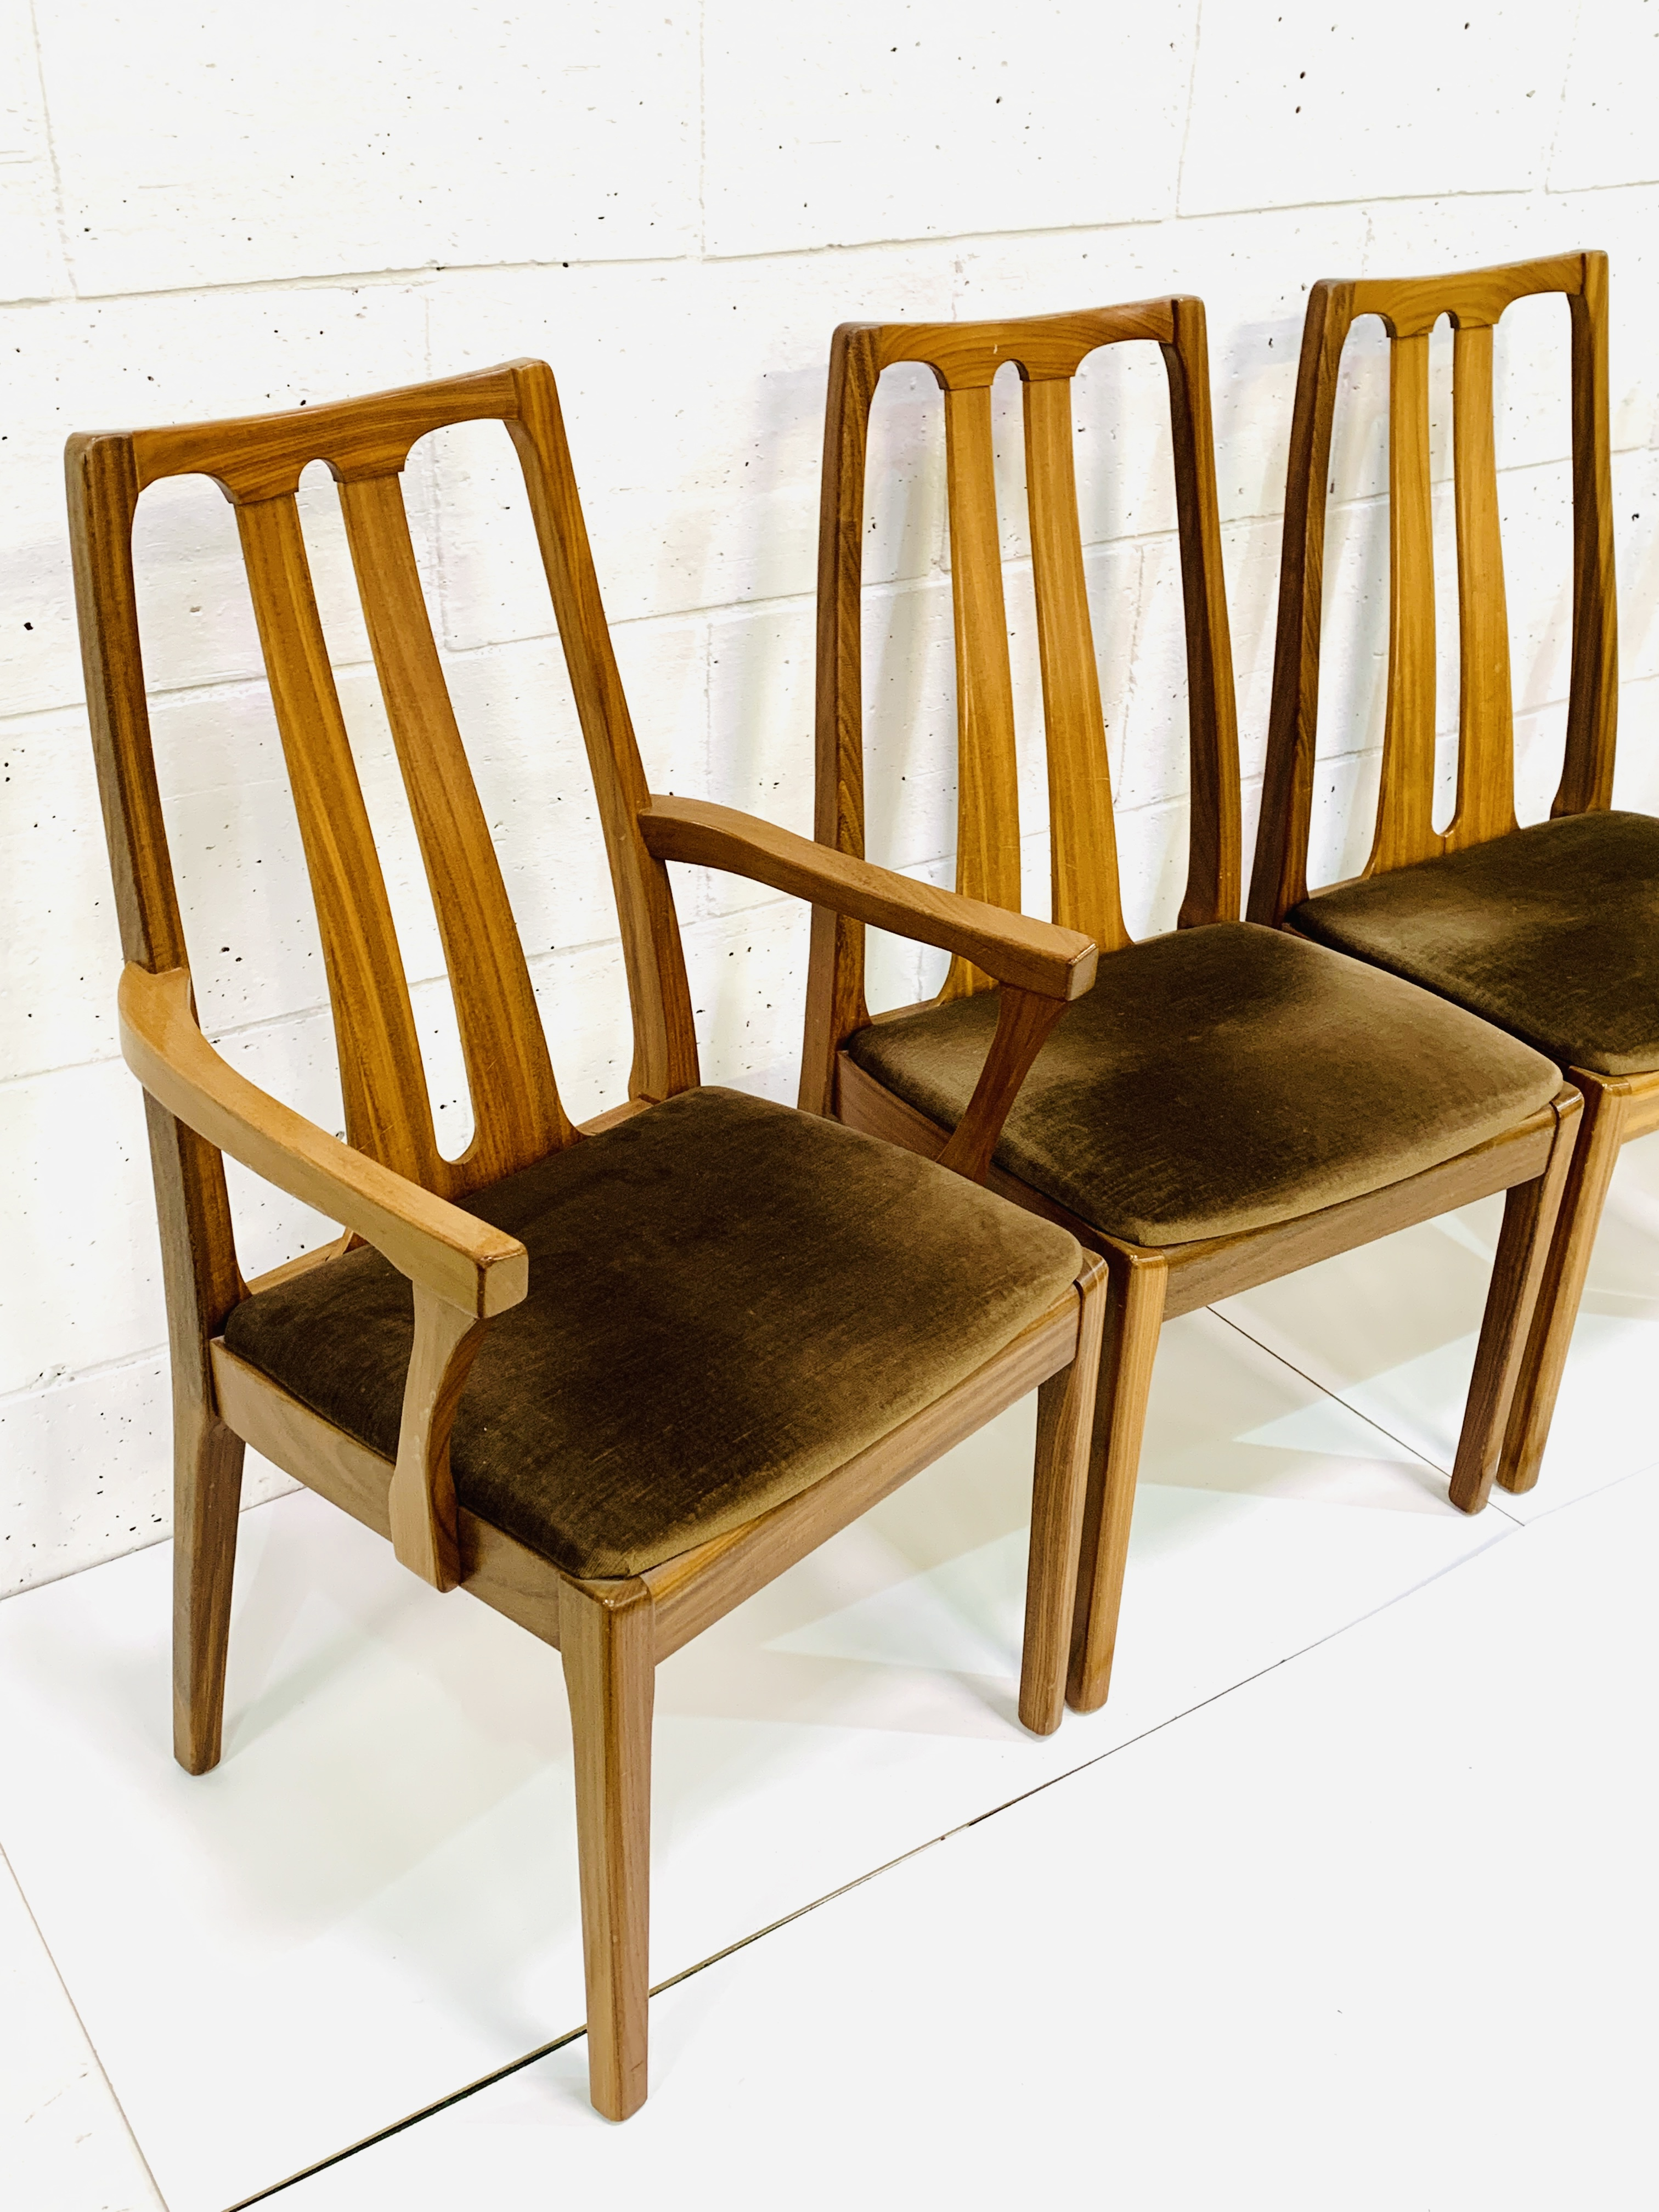 Group of four Nathan Furniture chairs - Image 3 of 6